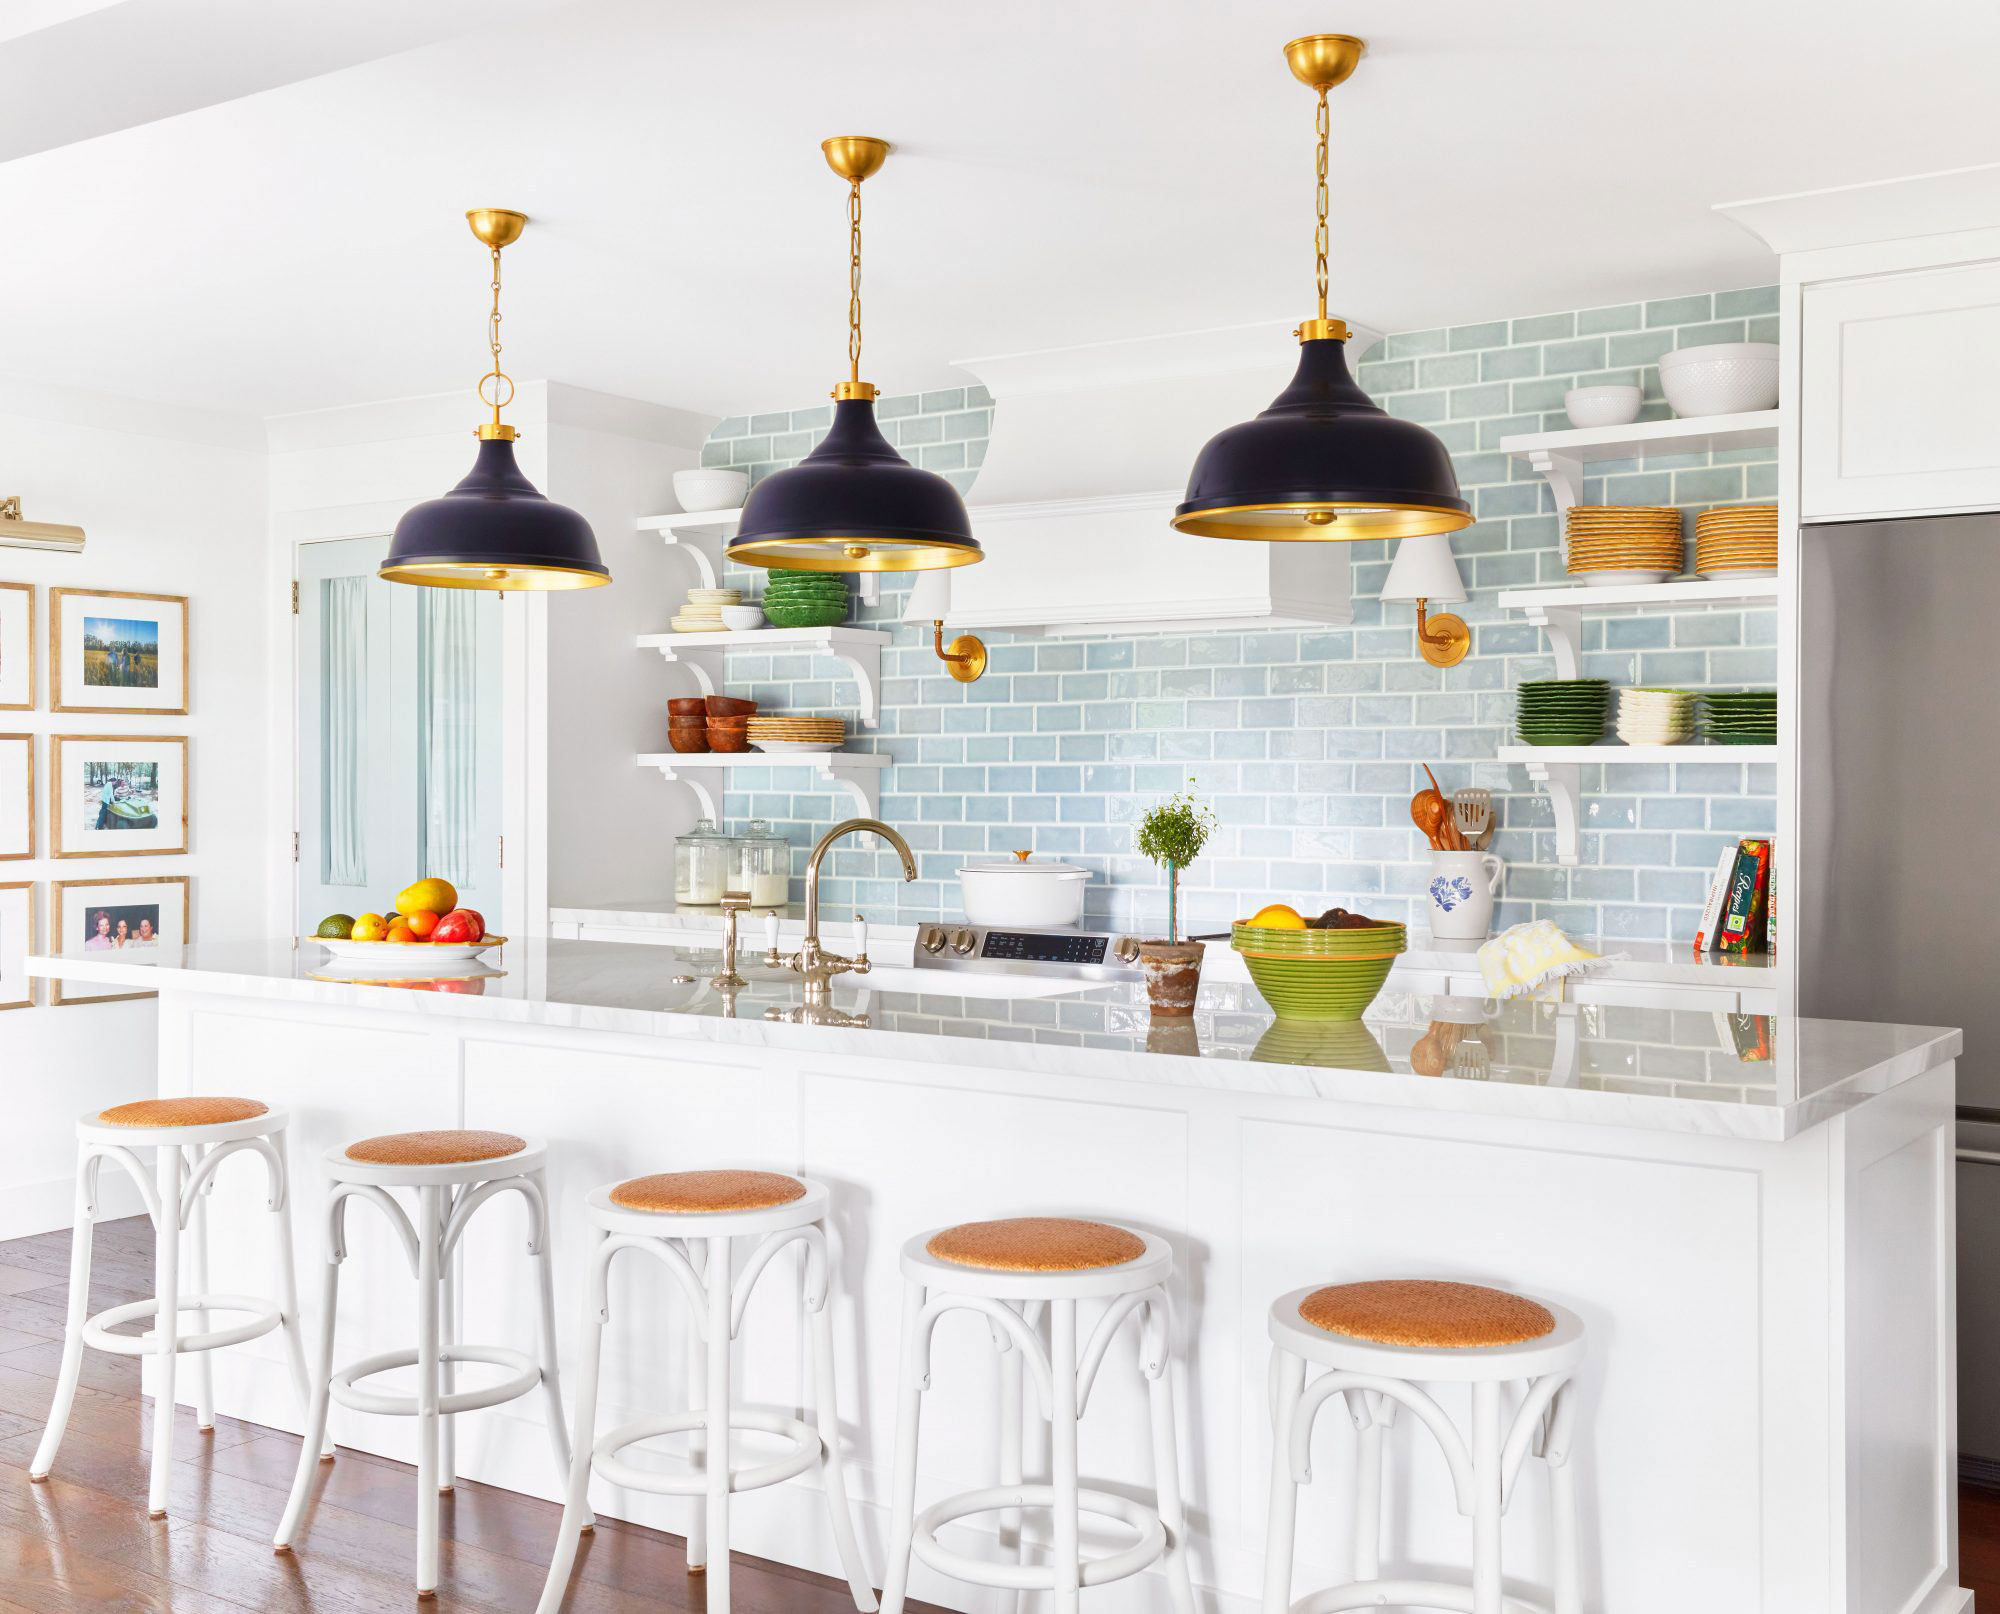 White Kitchen with Black Pendant Lights and Turquoise Subway Tile